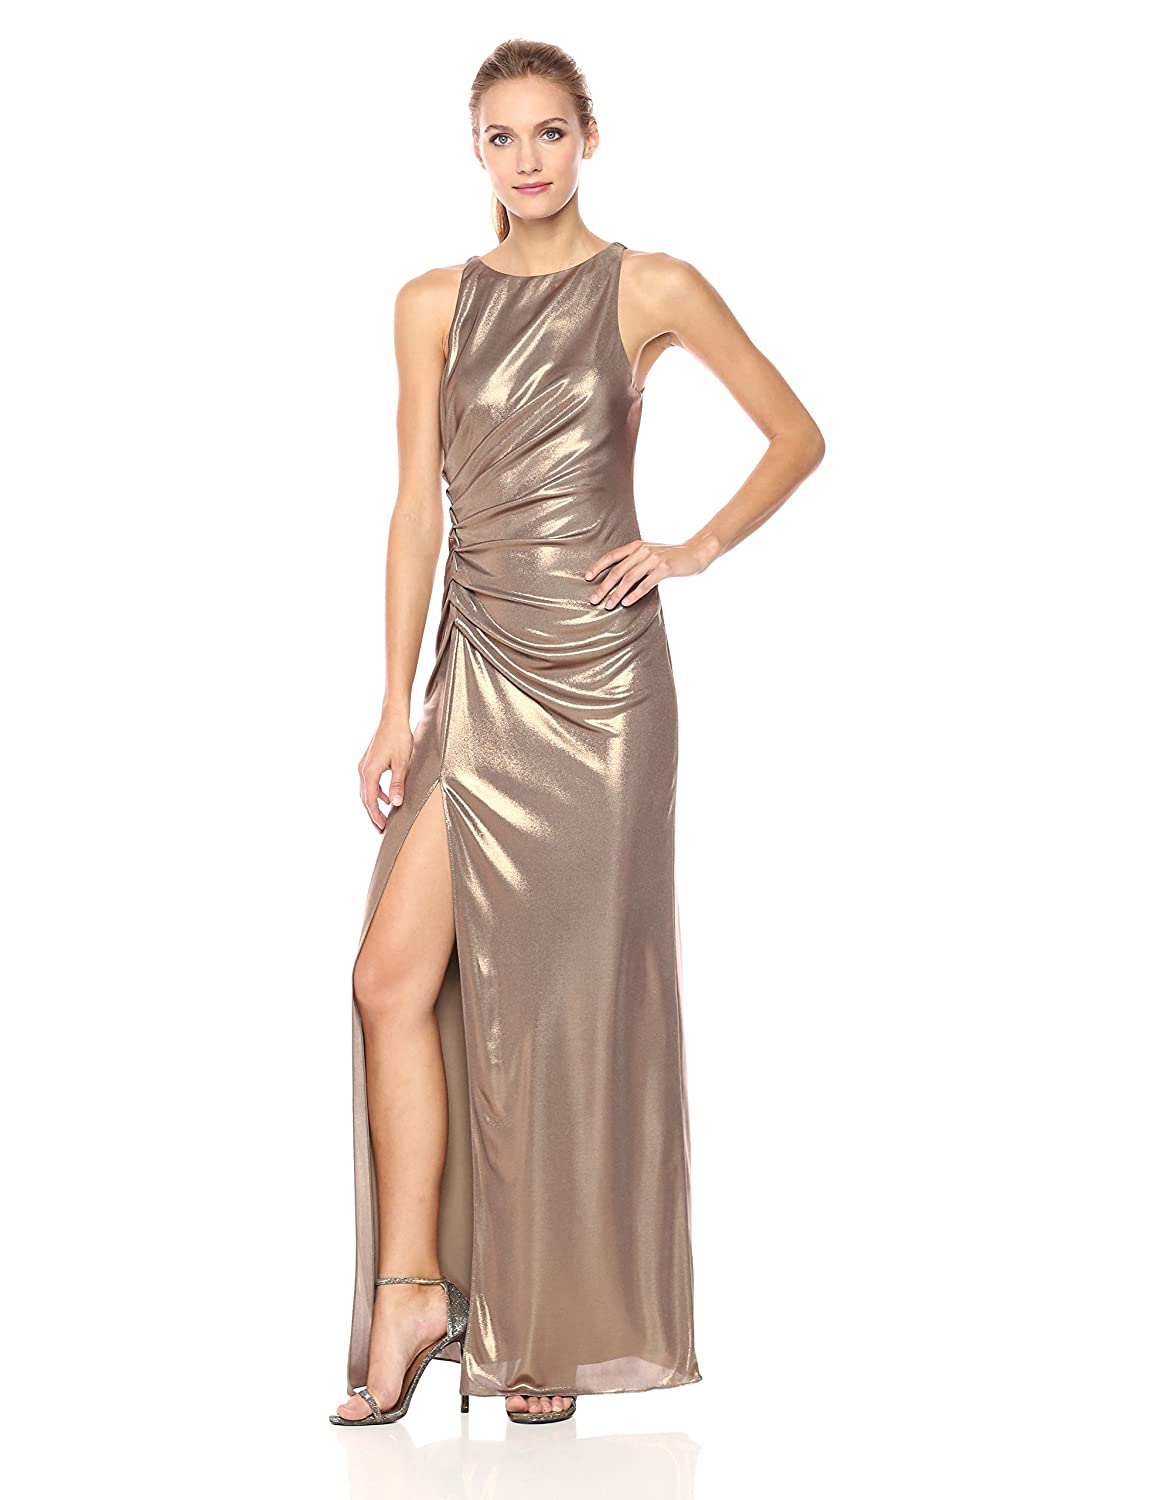 a868b67257c Amazon.com  Halston Heritage Women s Sleeveless Boatneck Ruched Side Gown   Clothing